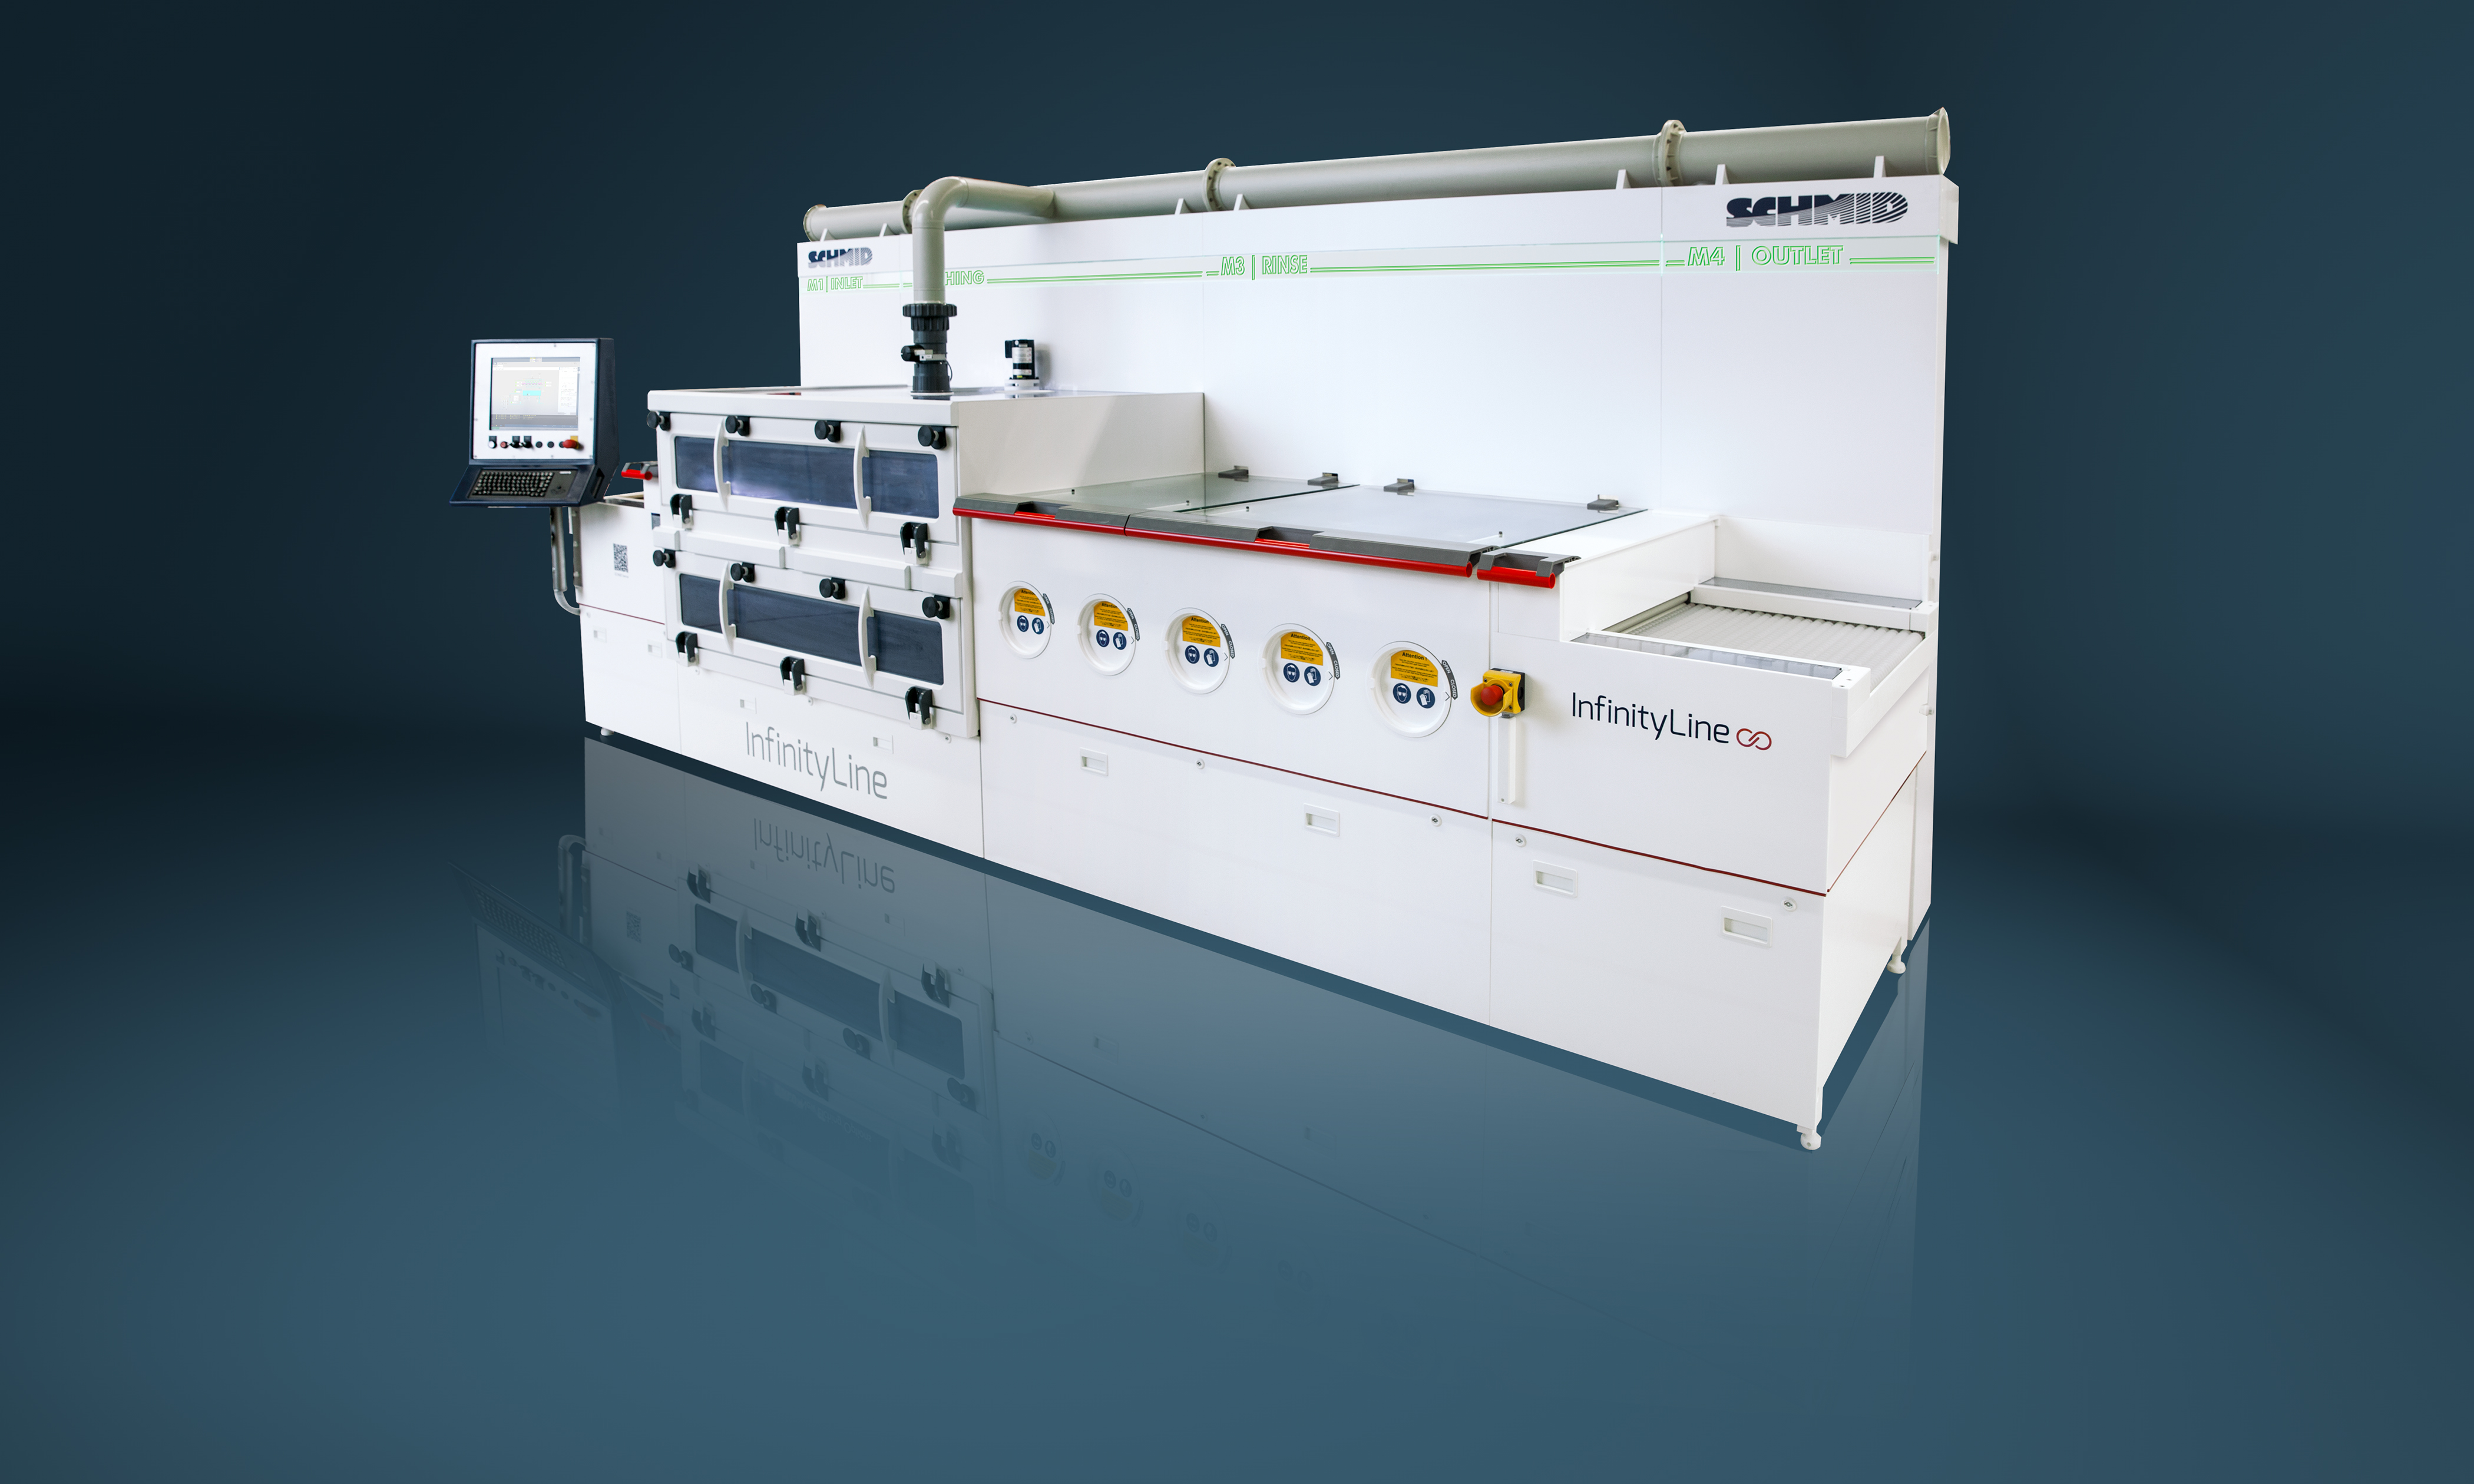 Innovative Circuits Relies On Schmids Infinityline Schmid Group Printed Circuit Board Machine The